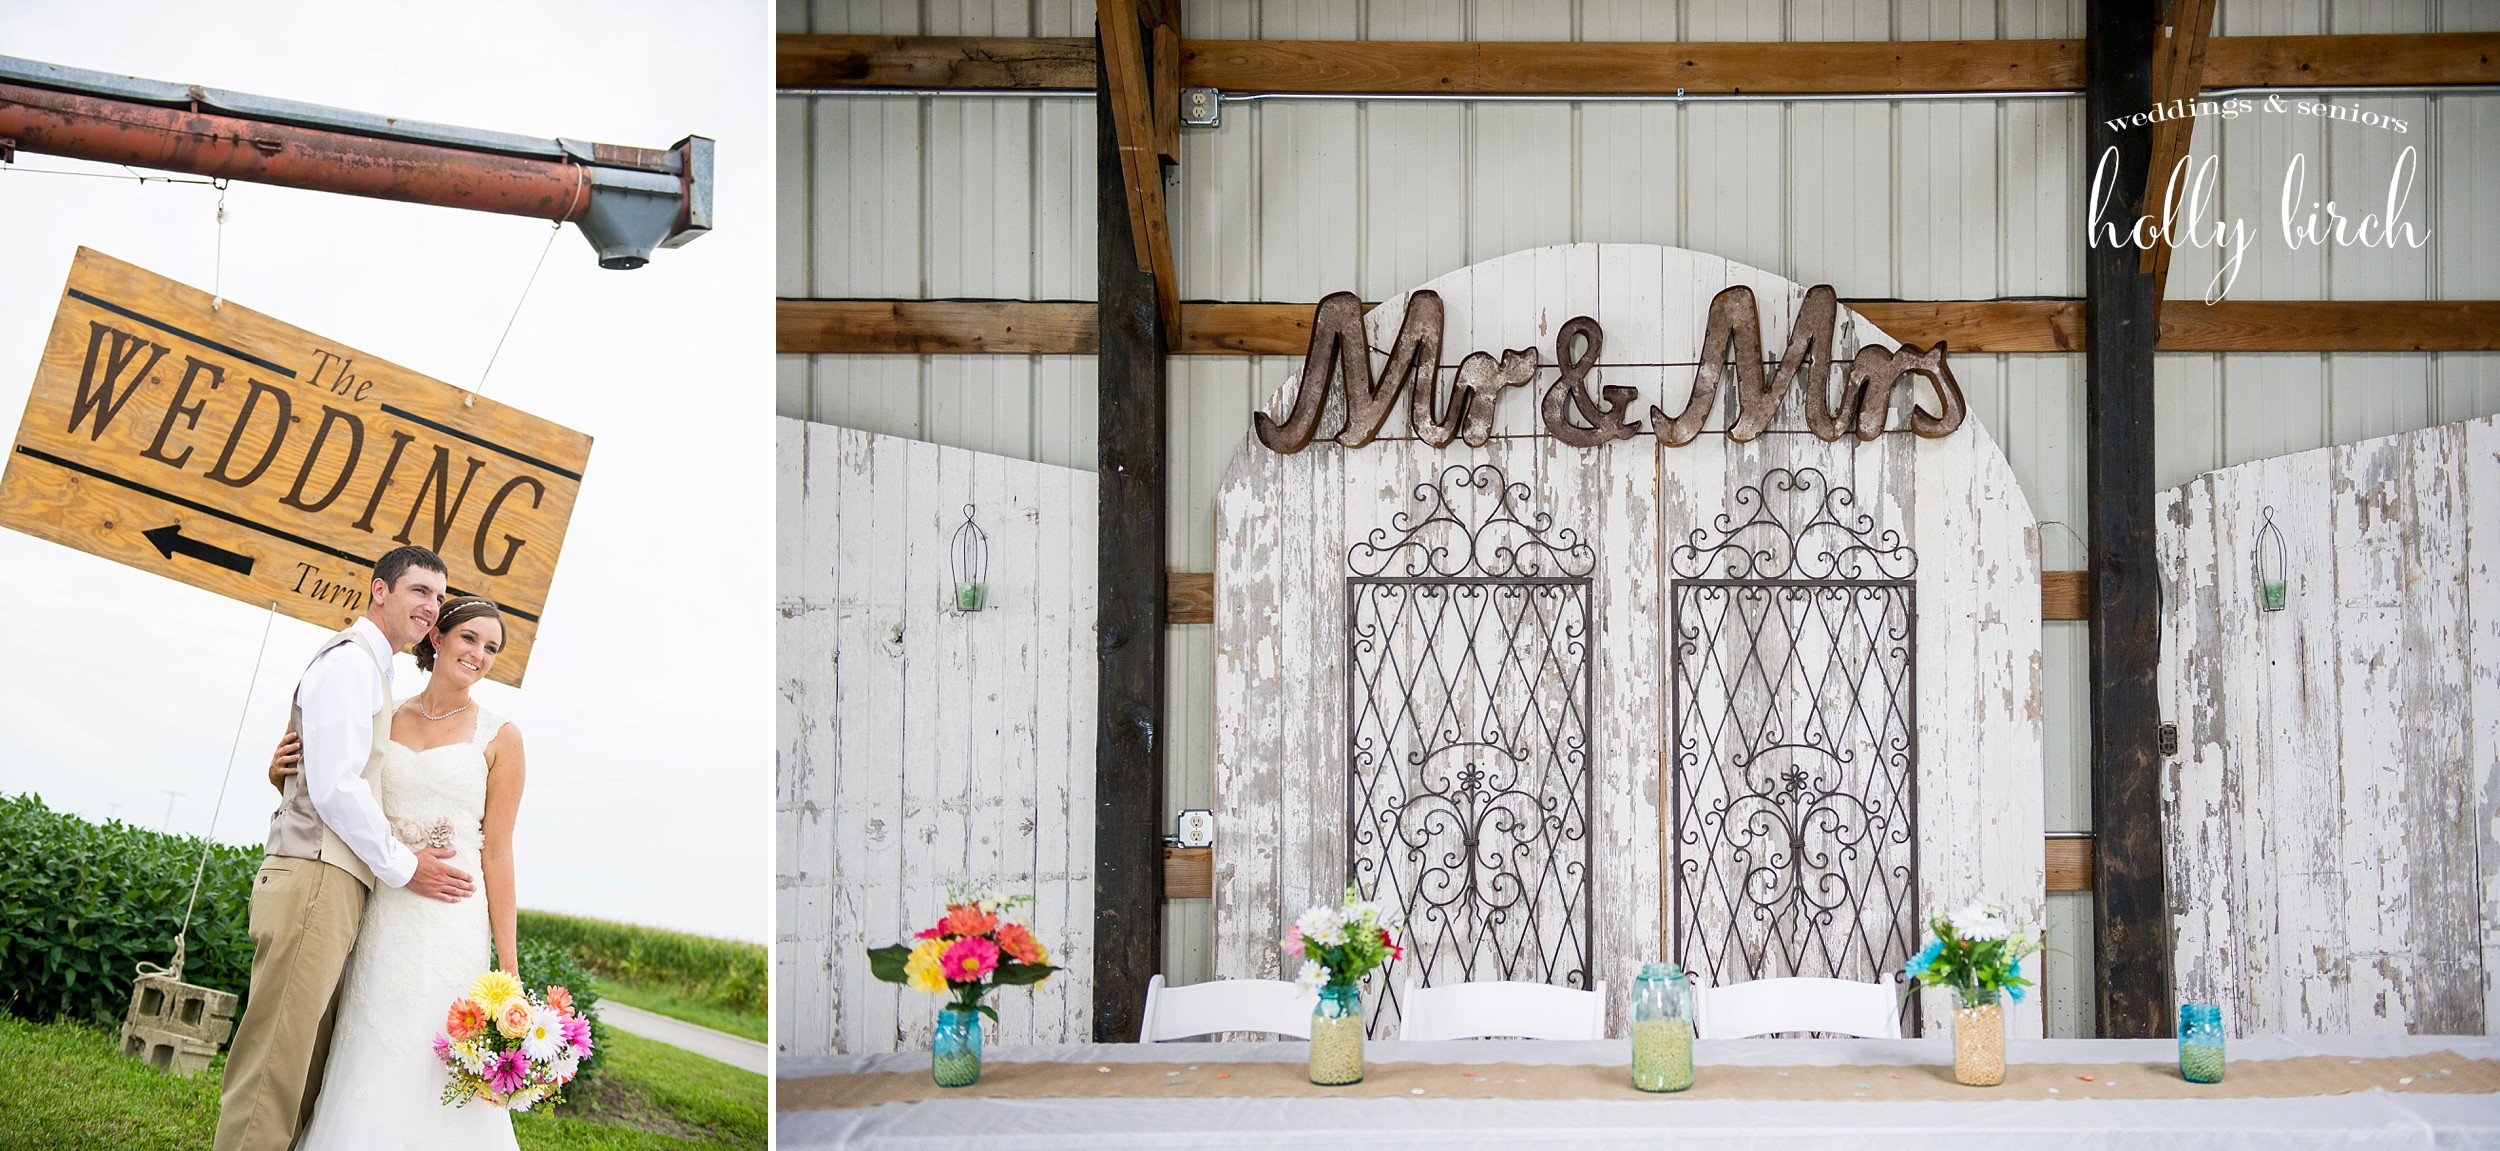 Mr. & Mrs. sign in shed